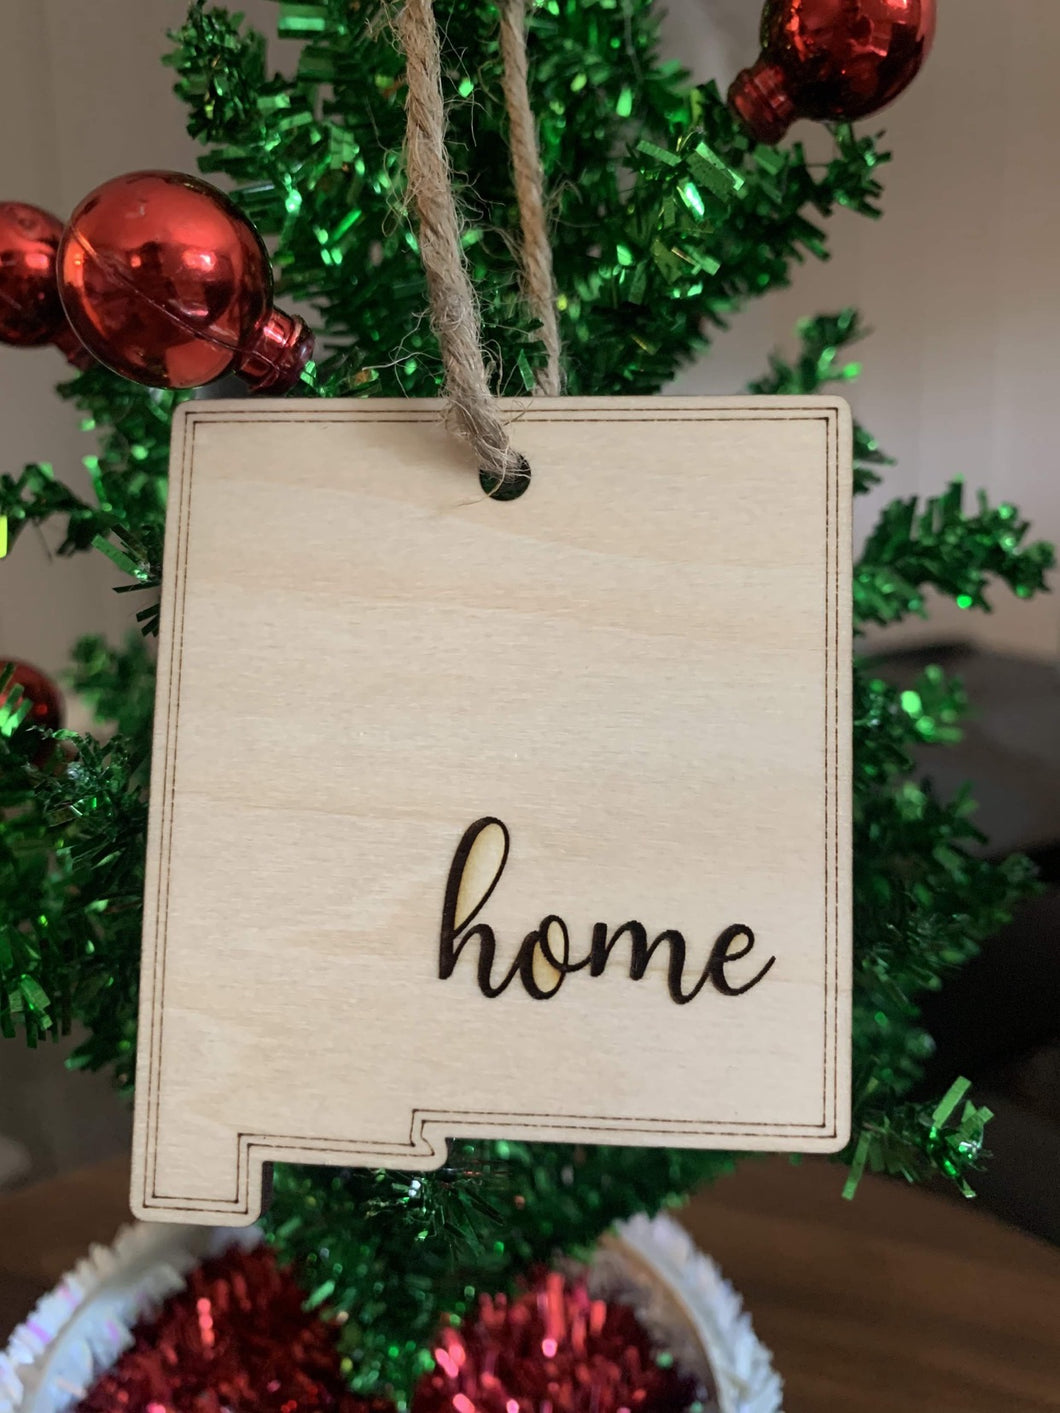 Home for the Holidays - New Mexico Ornament